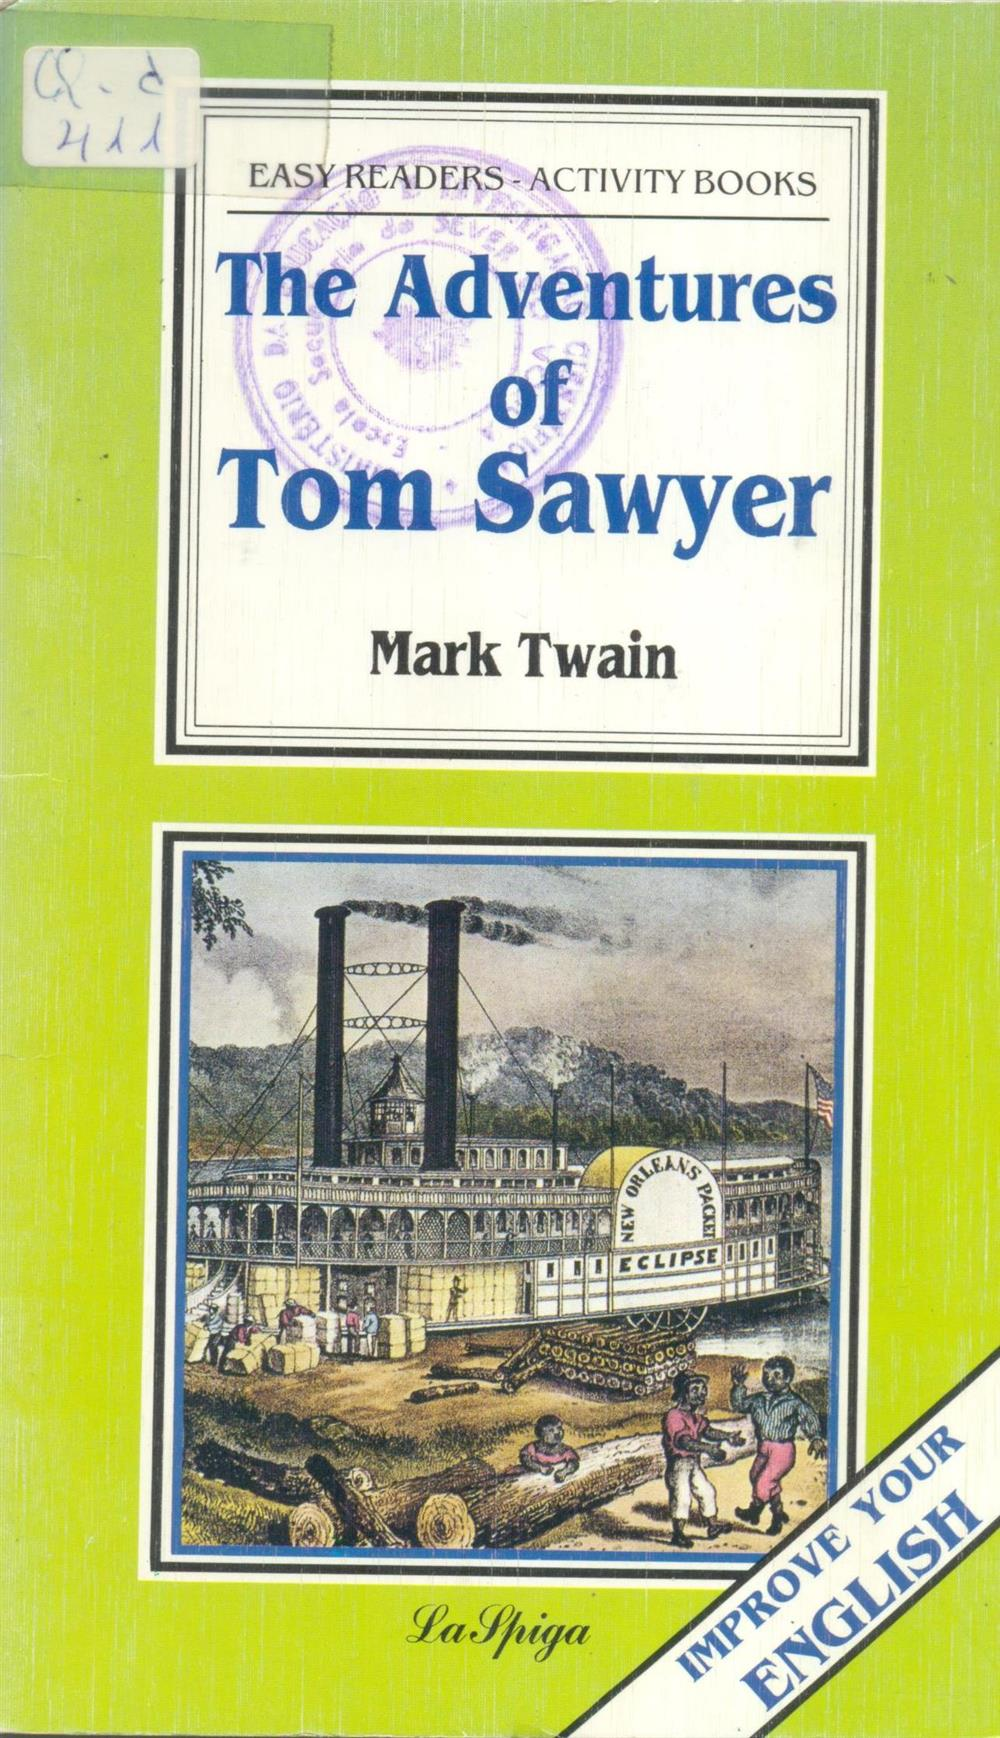 The adventures of Tom Sawyer 001.jpg